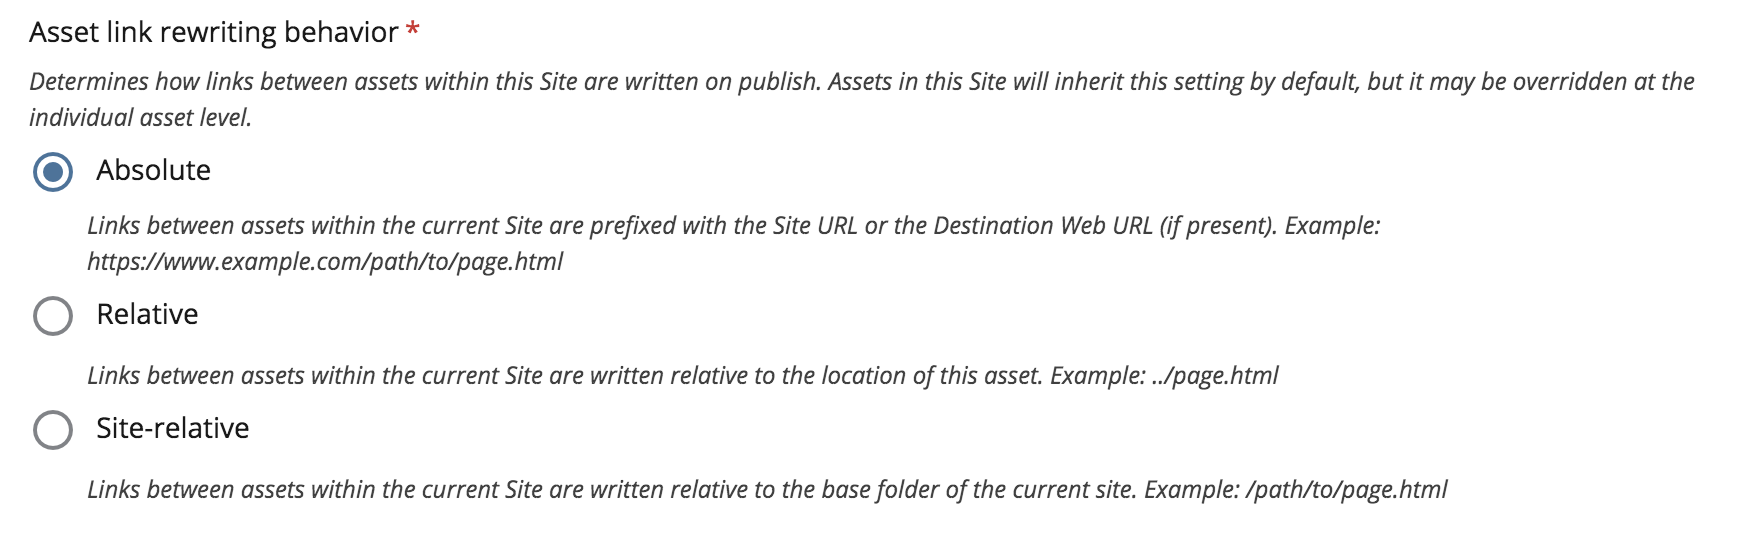 site level link rewriting options